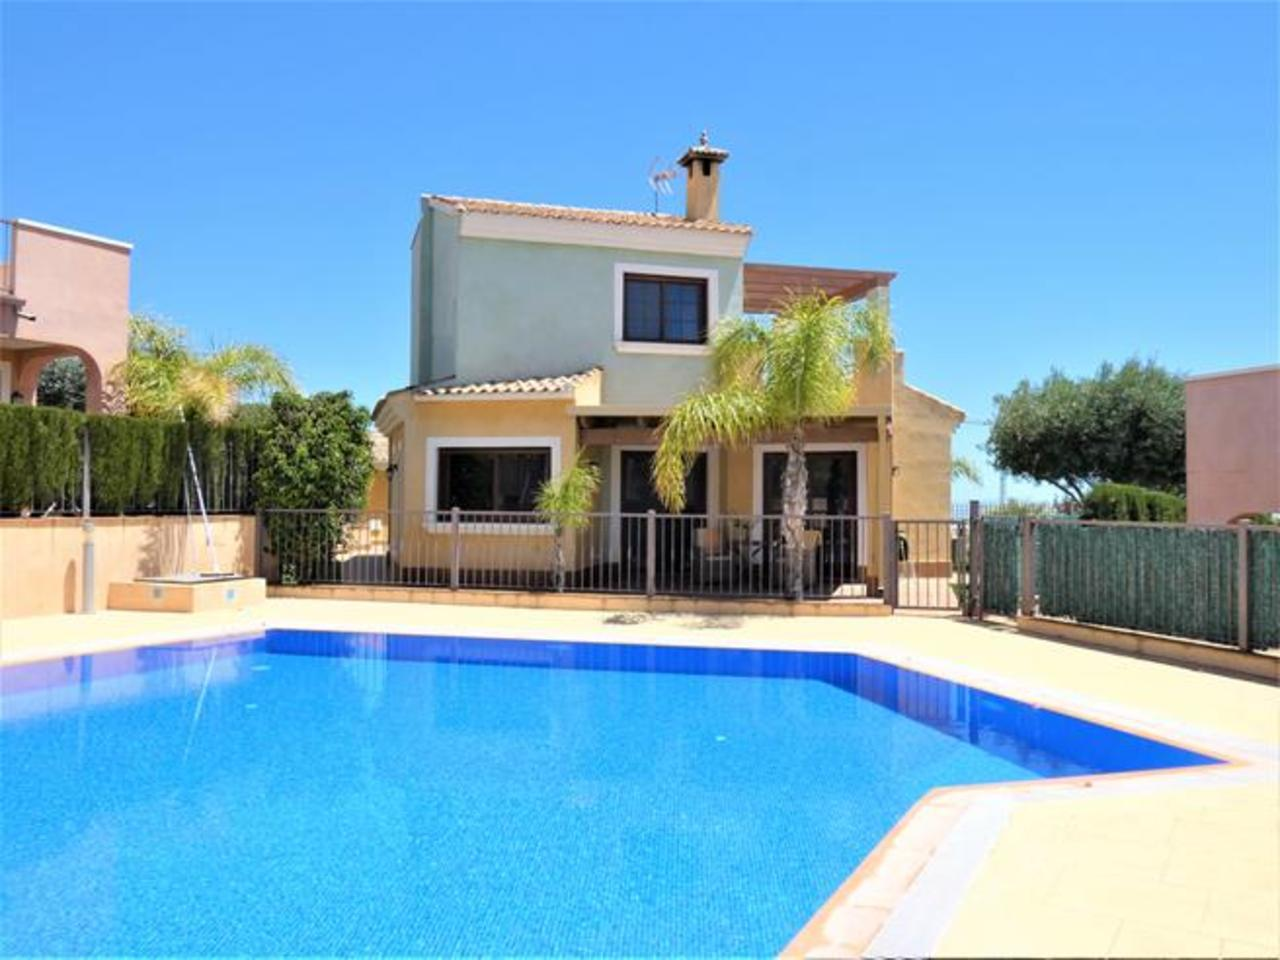 3 Bedroom, villa – Altaona Golf